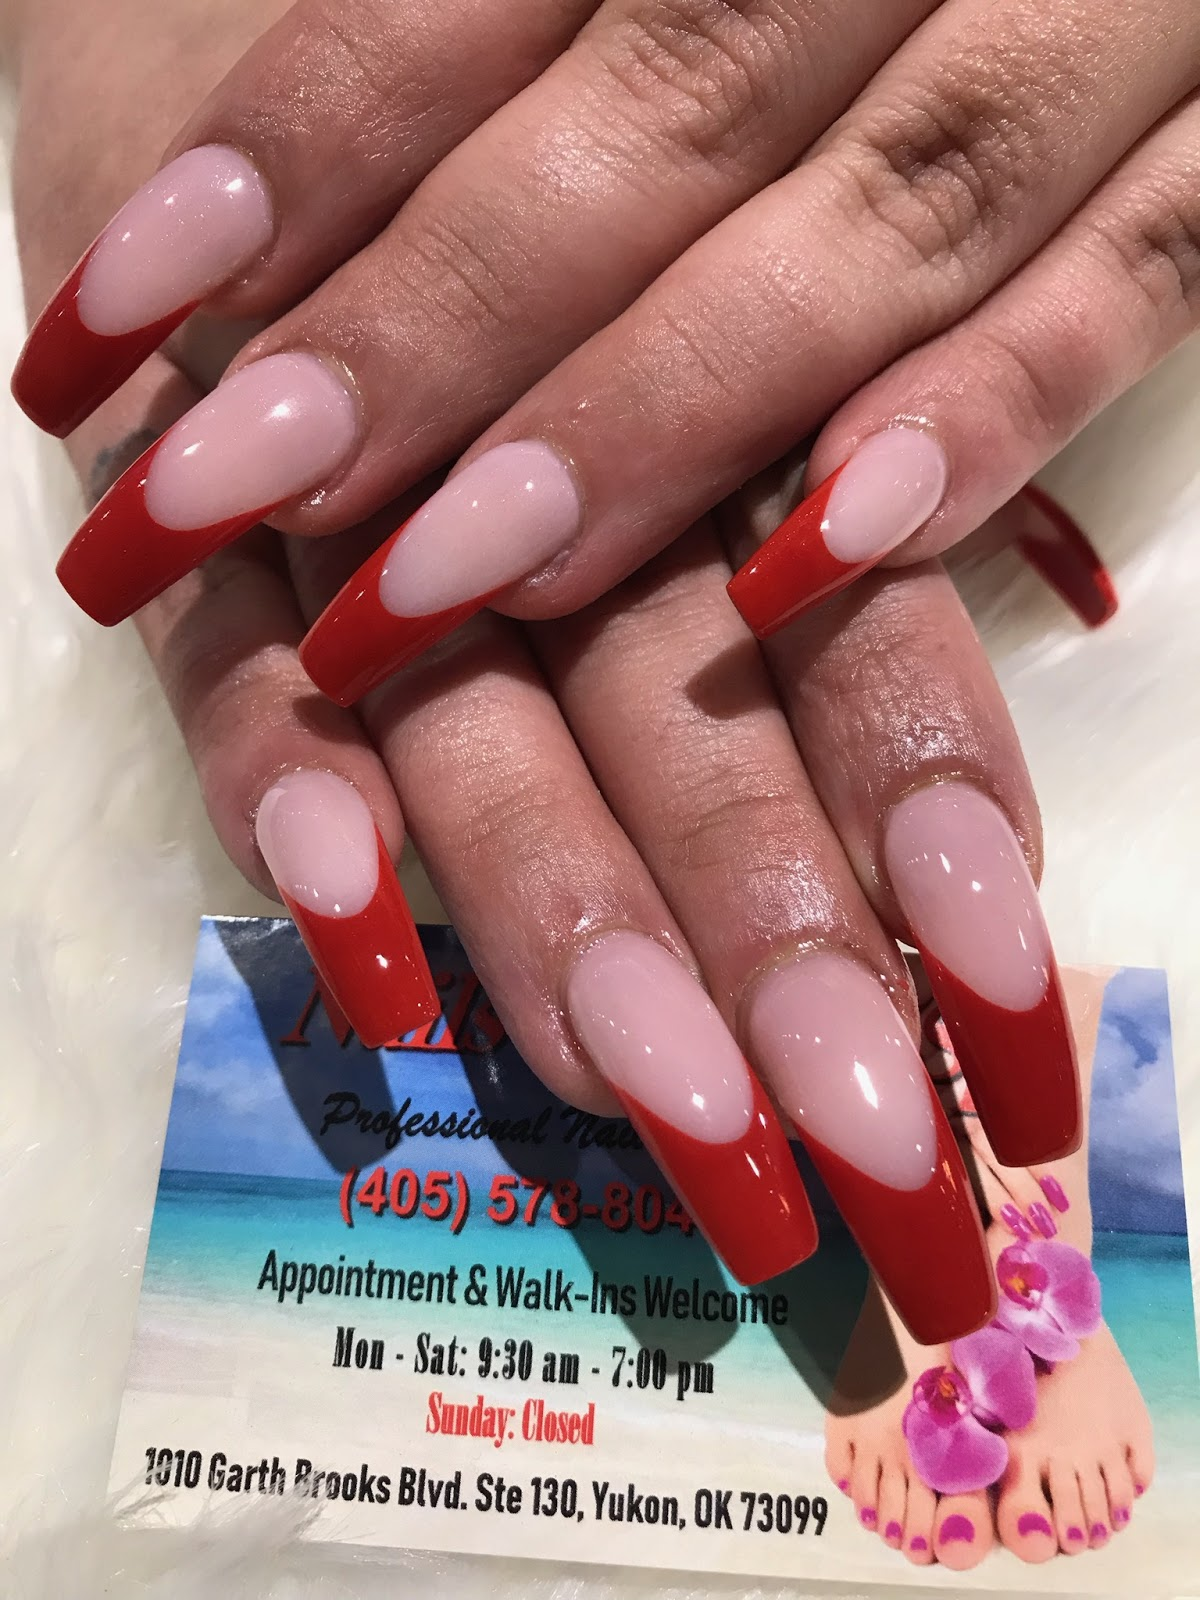 Nail Salon Yukon Ok : salon, yukon, Nails, Salon, Yukon,, Oklahoma, 73099